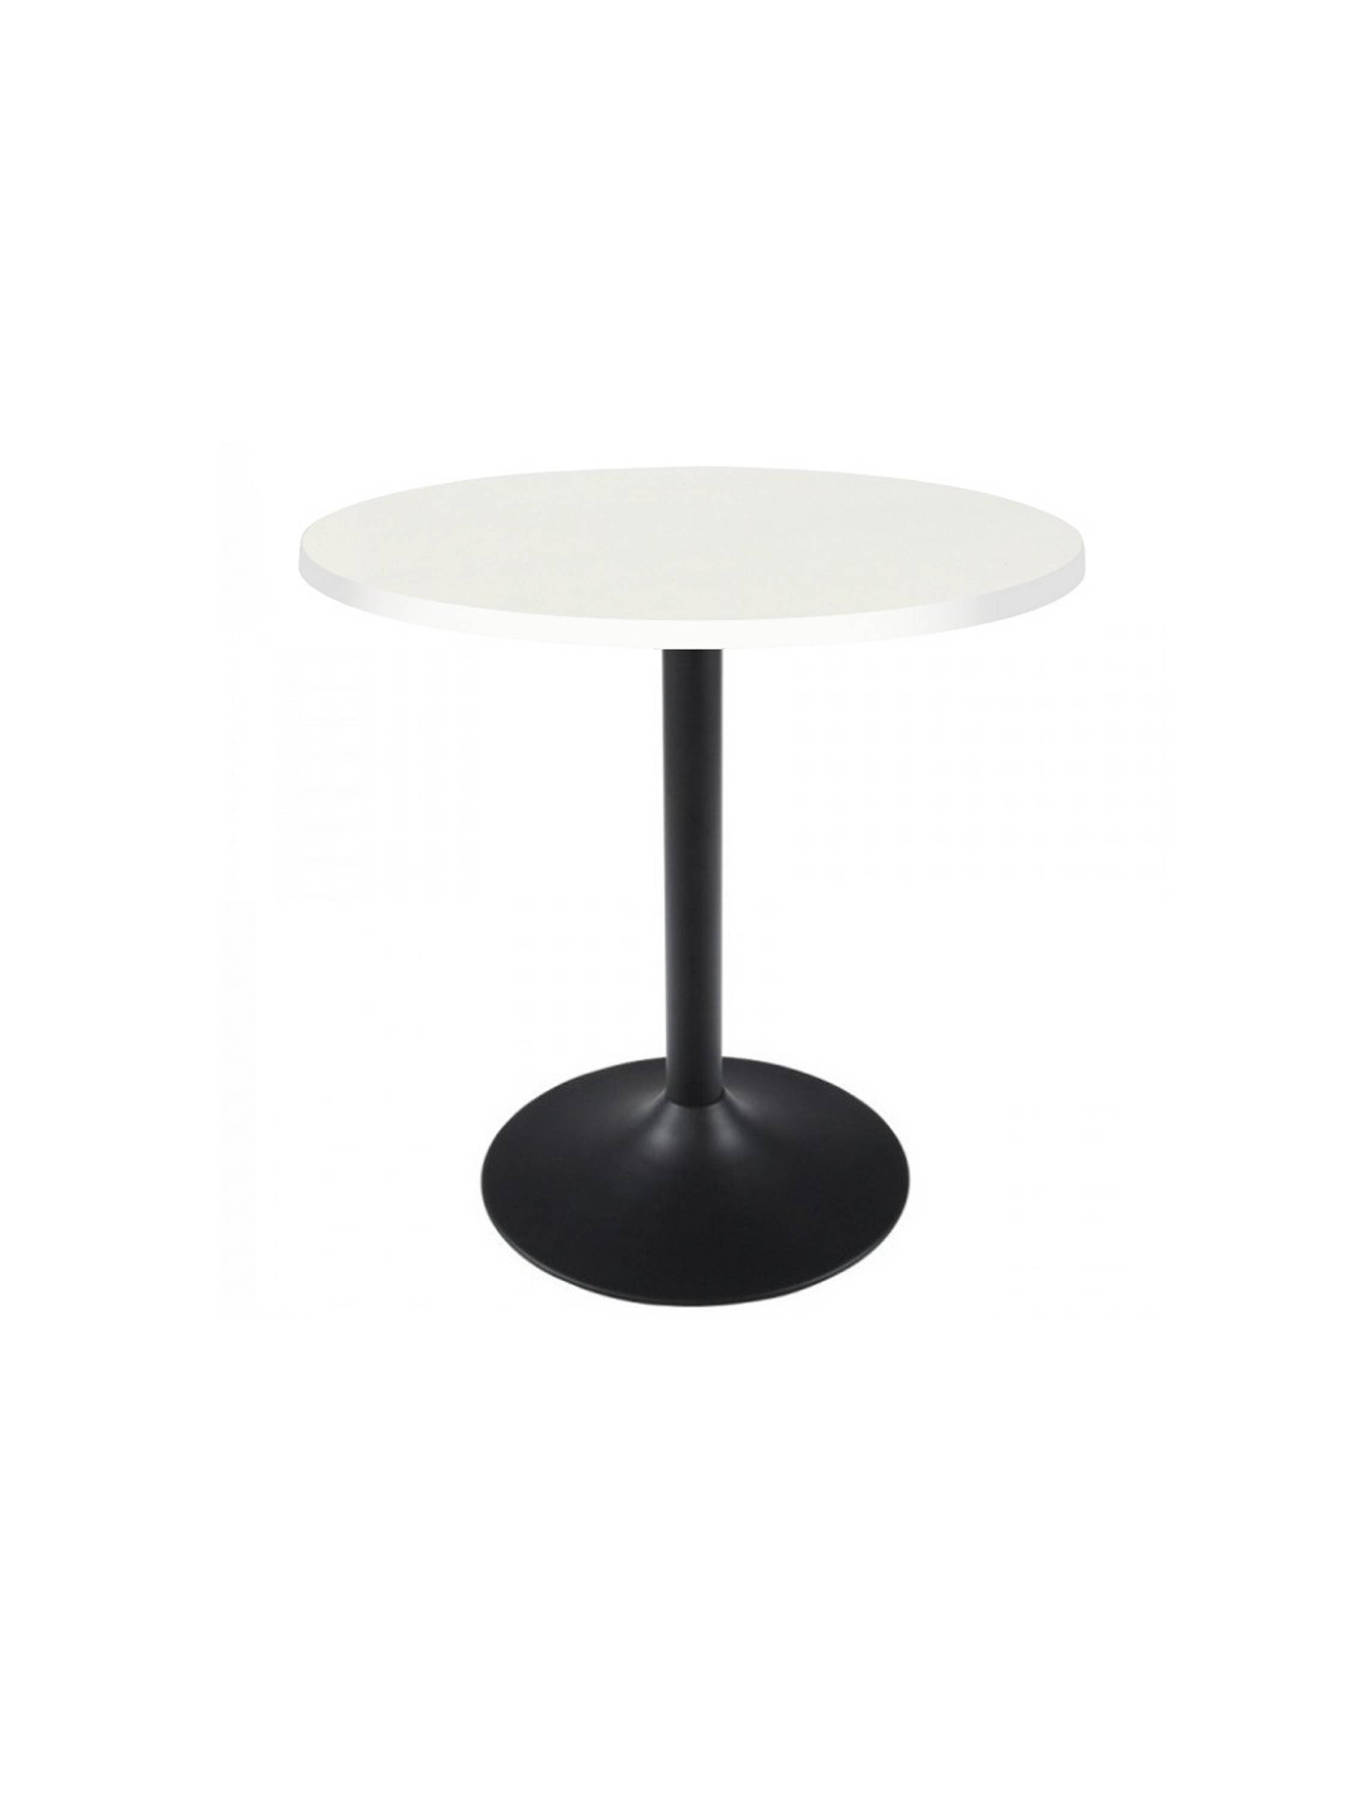 Table Vending With Structure And Base In Black Color-Board The Table In Melamine White Color. TAPHOLE AND CURLED M